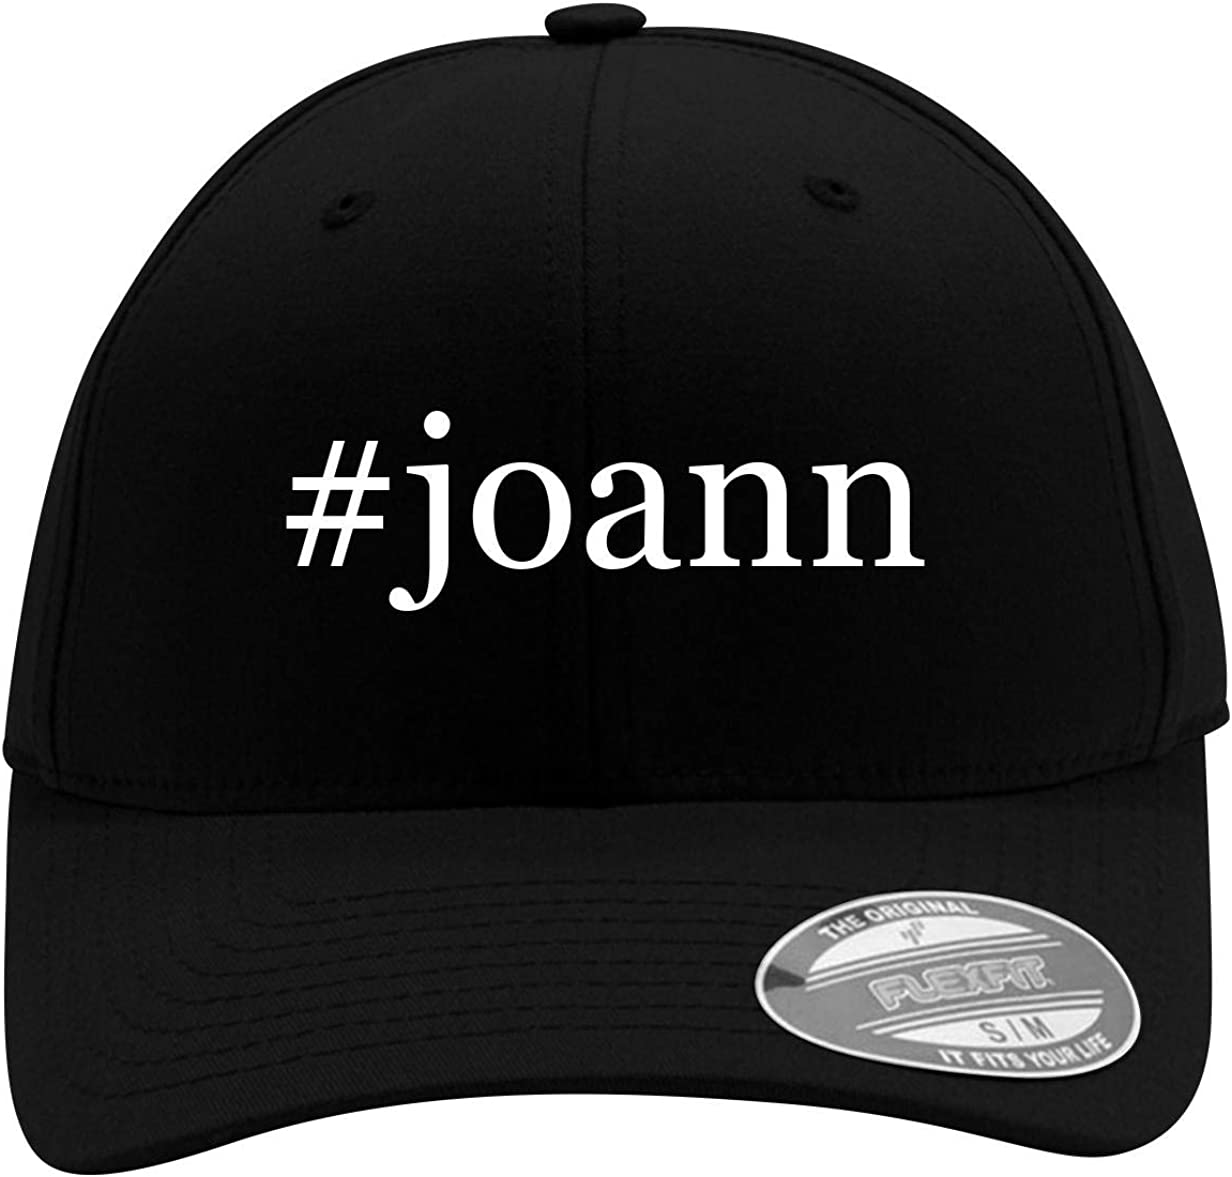 #Joann - Men's Hashtag Flexfit Baseball Cap Hat